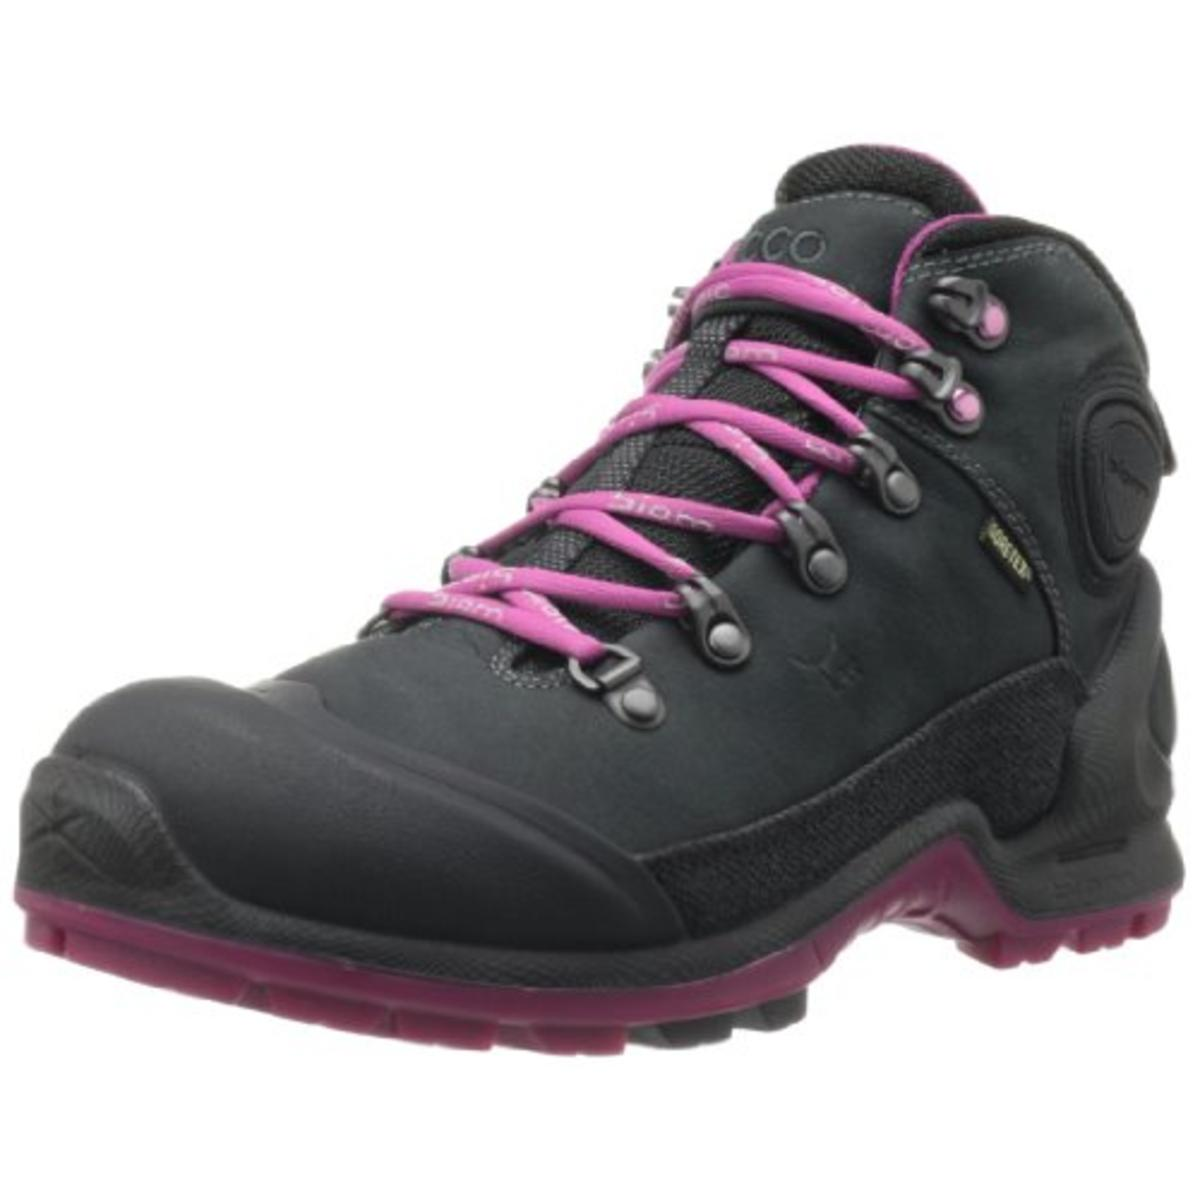 ECCO Womens Biom Terrain Leather Insulated Hiking Boots by Ecco